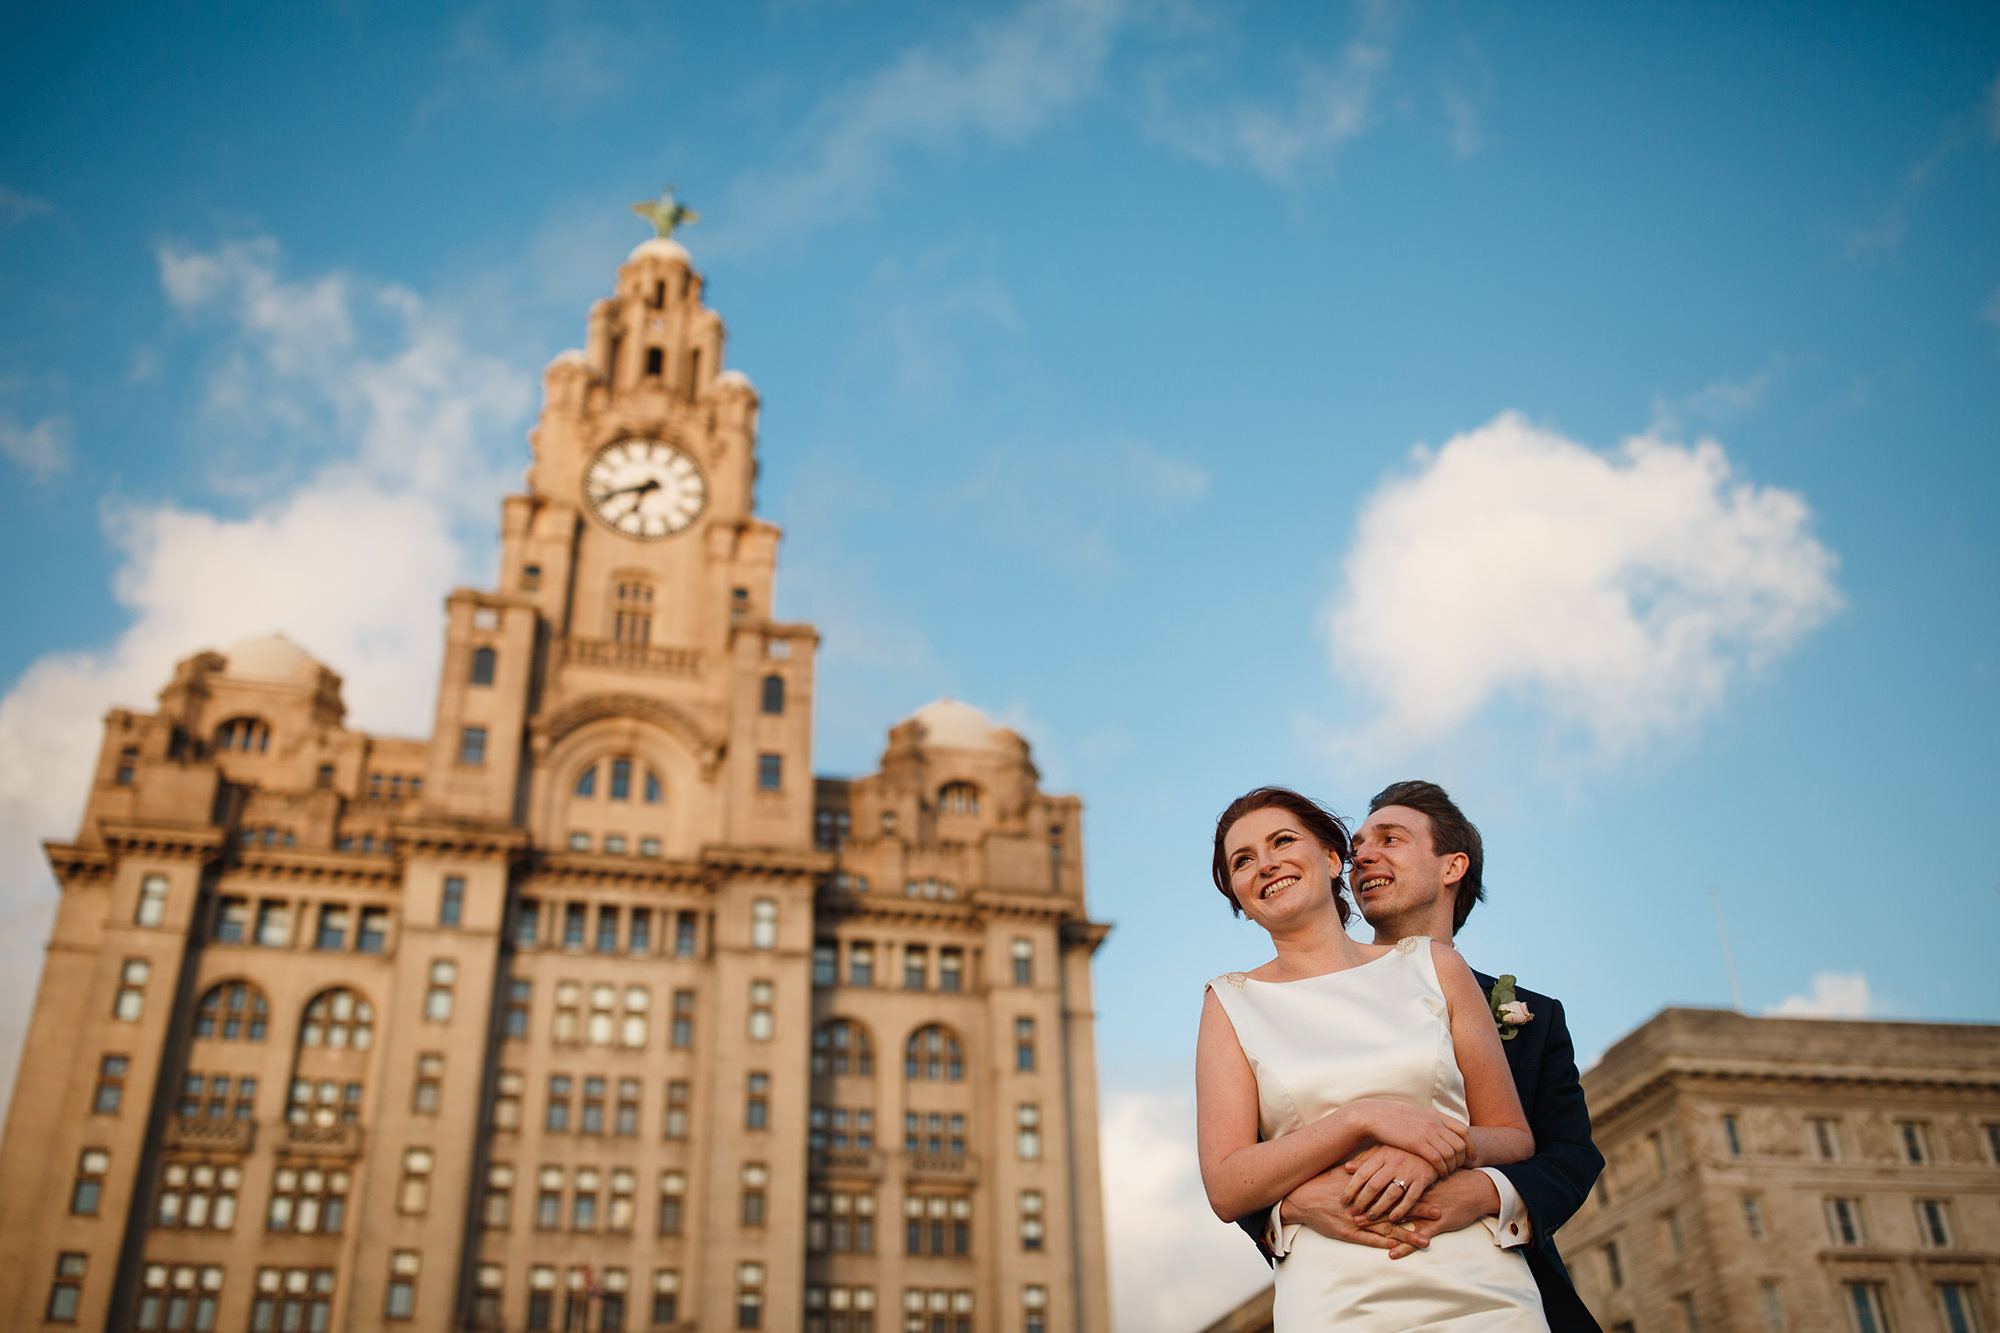 Stephen Walker Wedding Photographer Royal Liver Building Wedding Photography- Bride and Groom Pose in front of Royal Liver Building